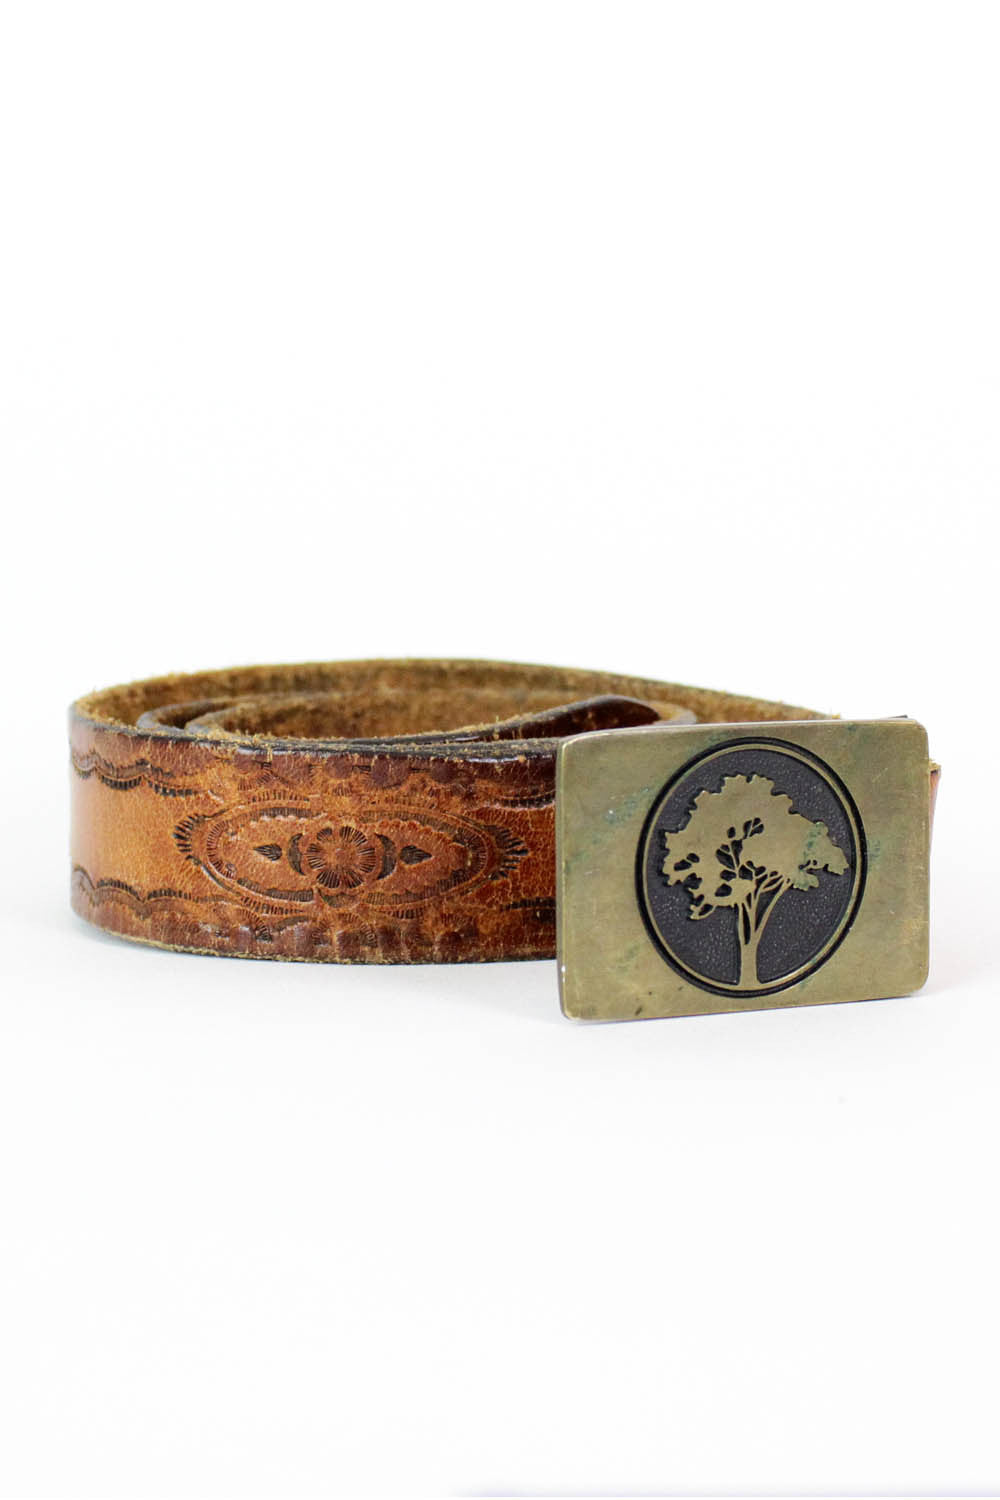 Tree of Brass Tooled Belt S/M/L